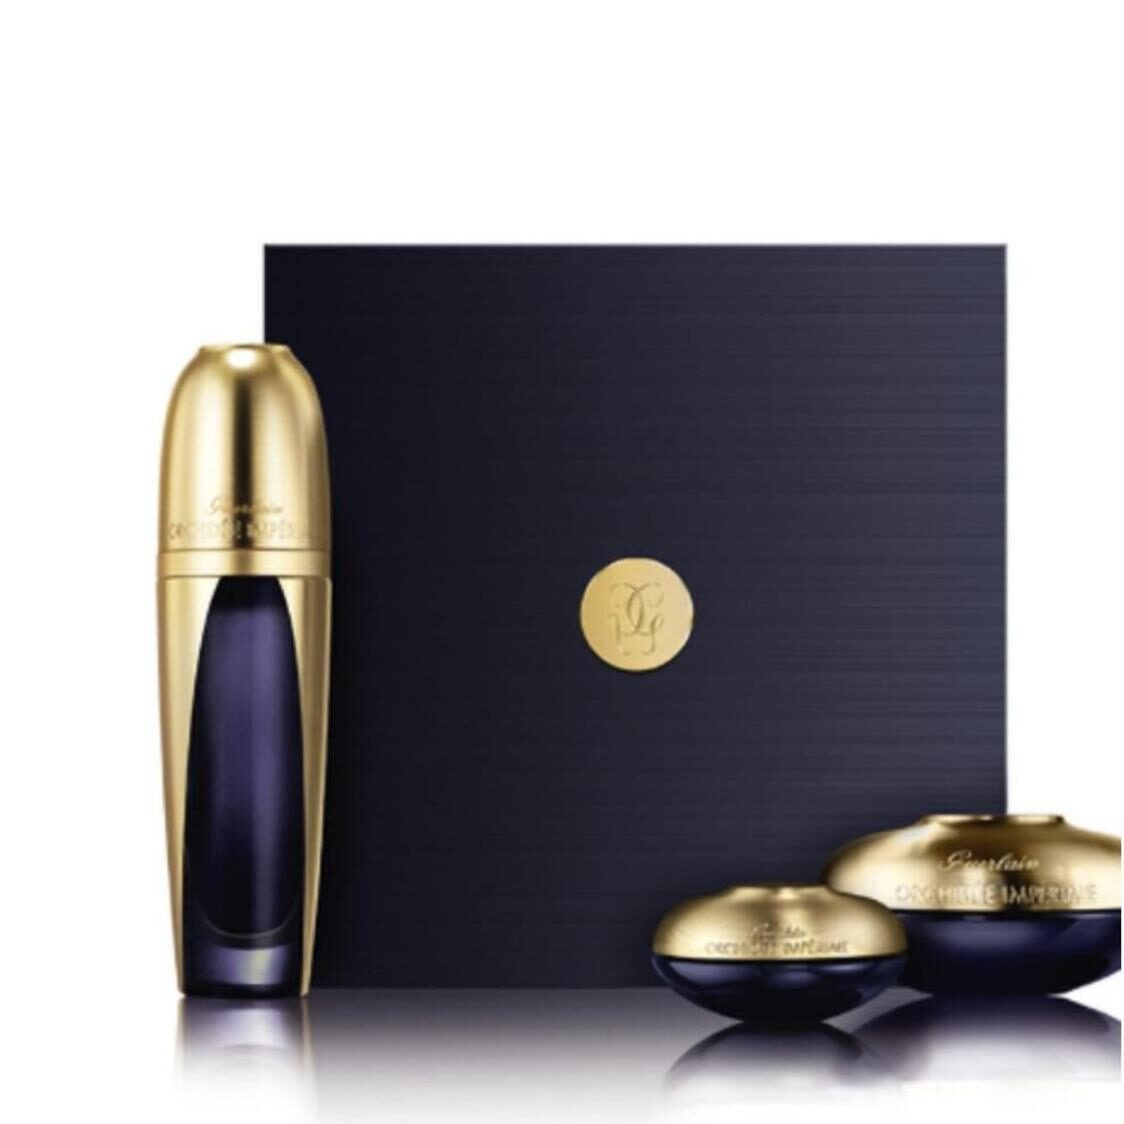 Guerlain Orchide Impriale The Imperial Ritual